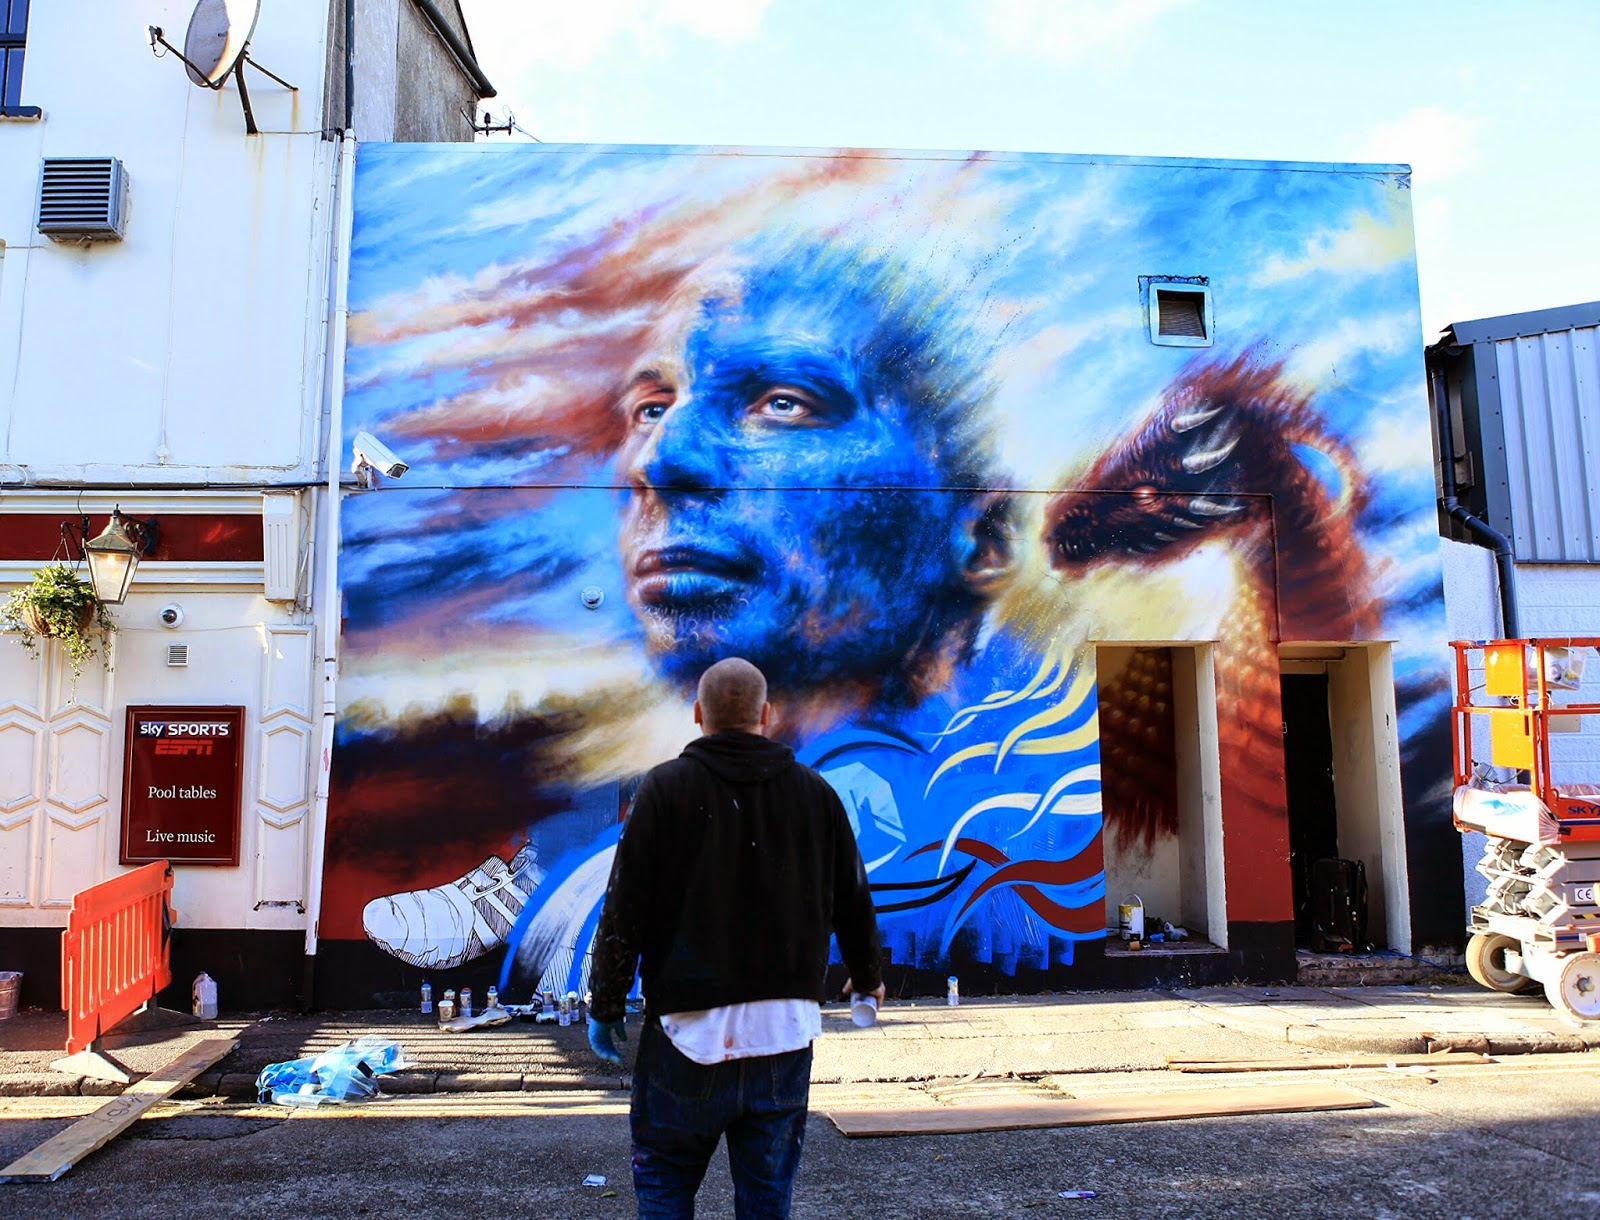 Dale Grimshaw for the Empty Walls Festival in Cardiff, Wales. Via StreetArtNews.